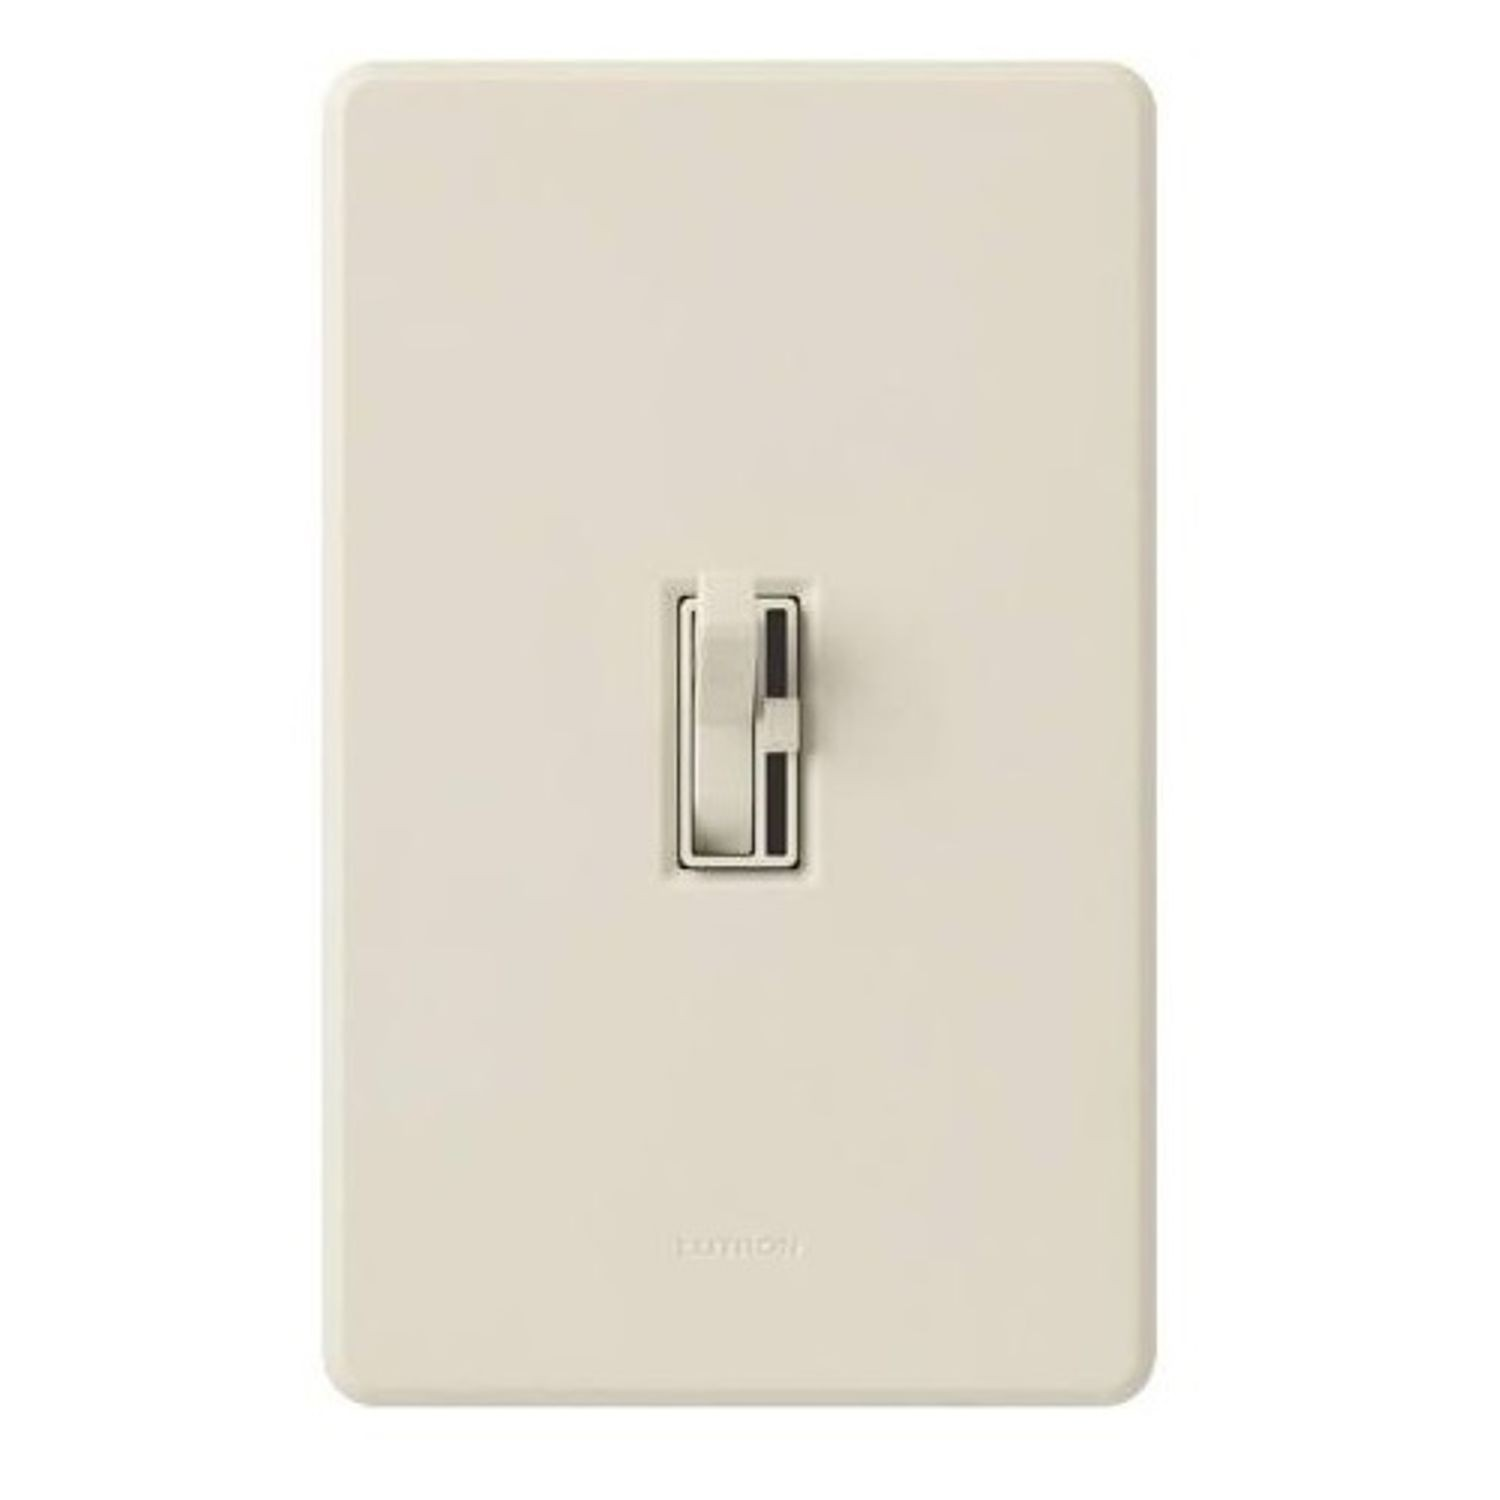 Ariadni Traditional 3 Way Circuit Dimmer Switch 120 Vac 1 Pole Light Almond